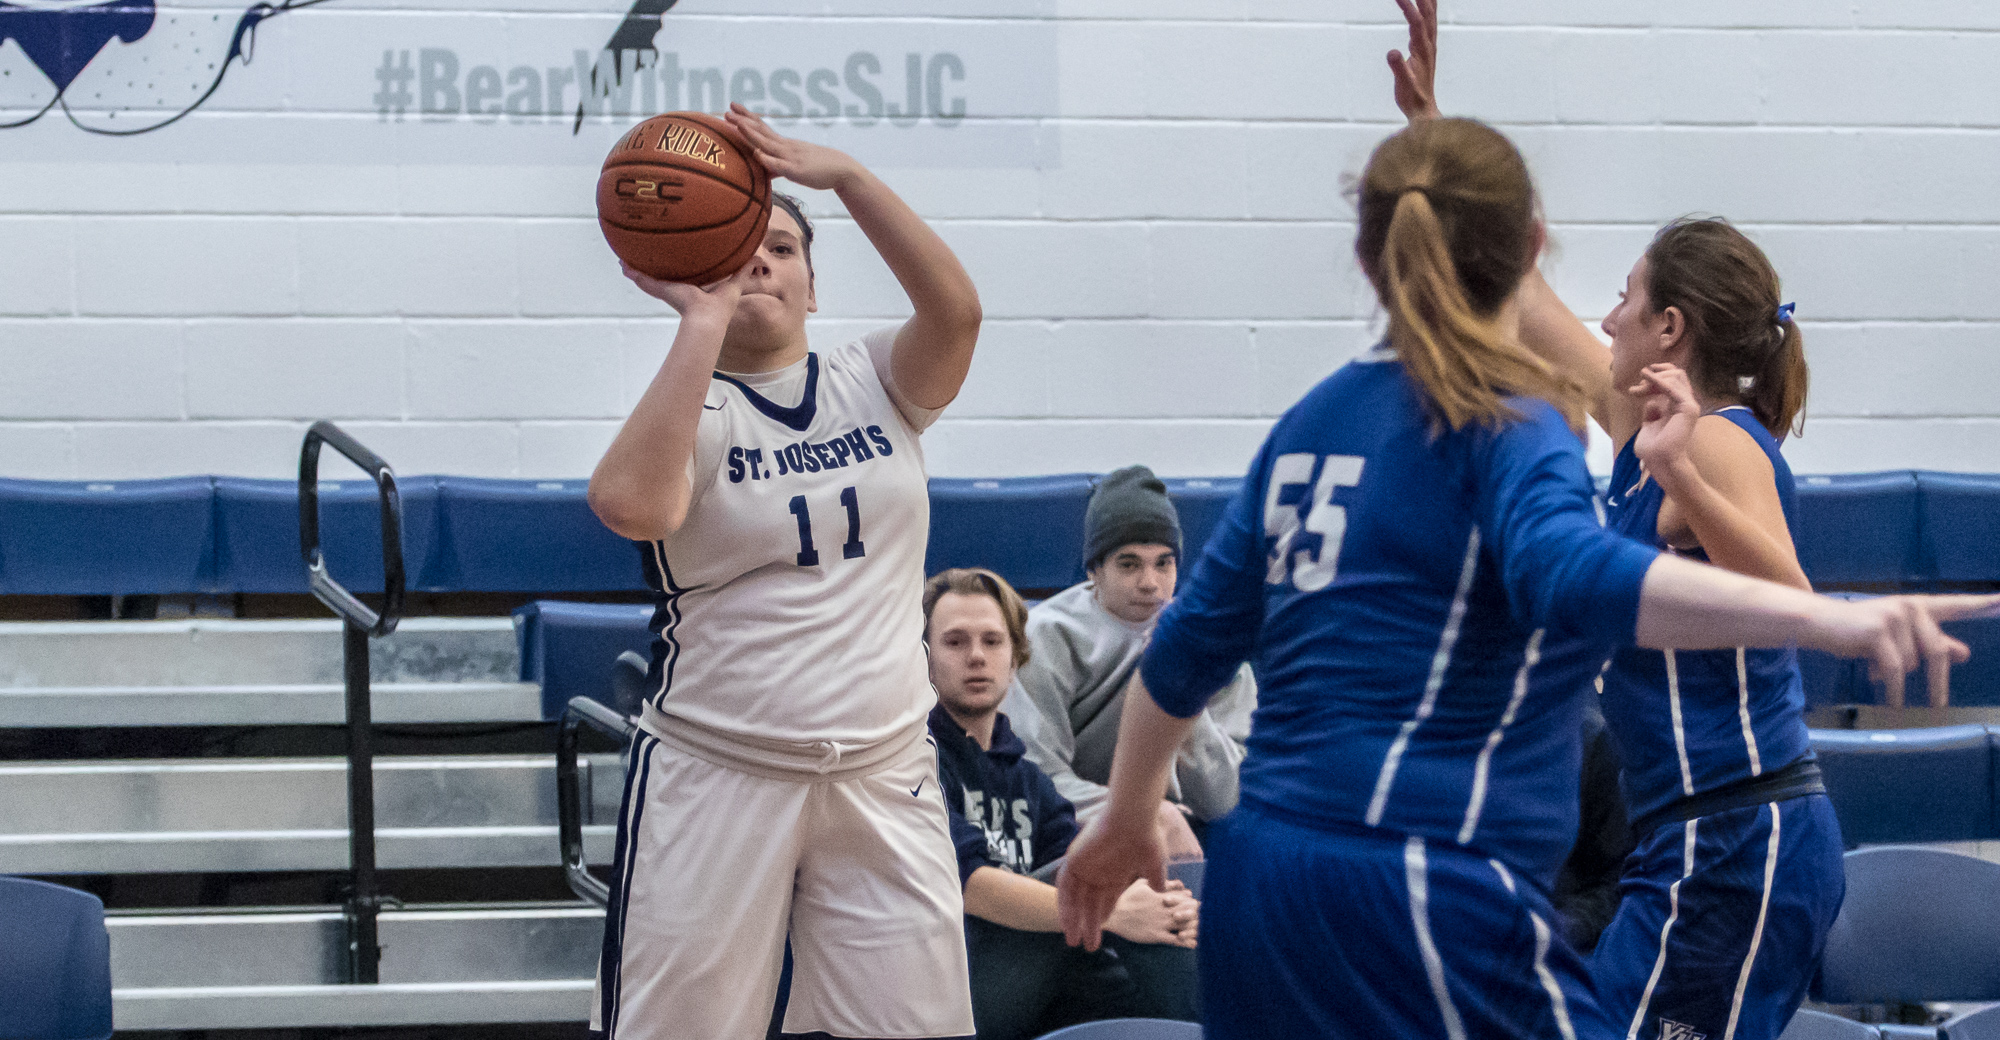 Women's Basketball Snaps Three-Game Skid at Home Over Yeshiva